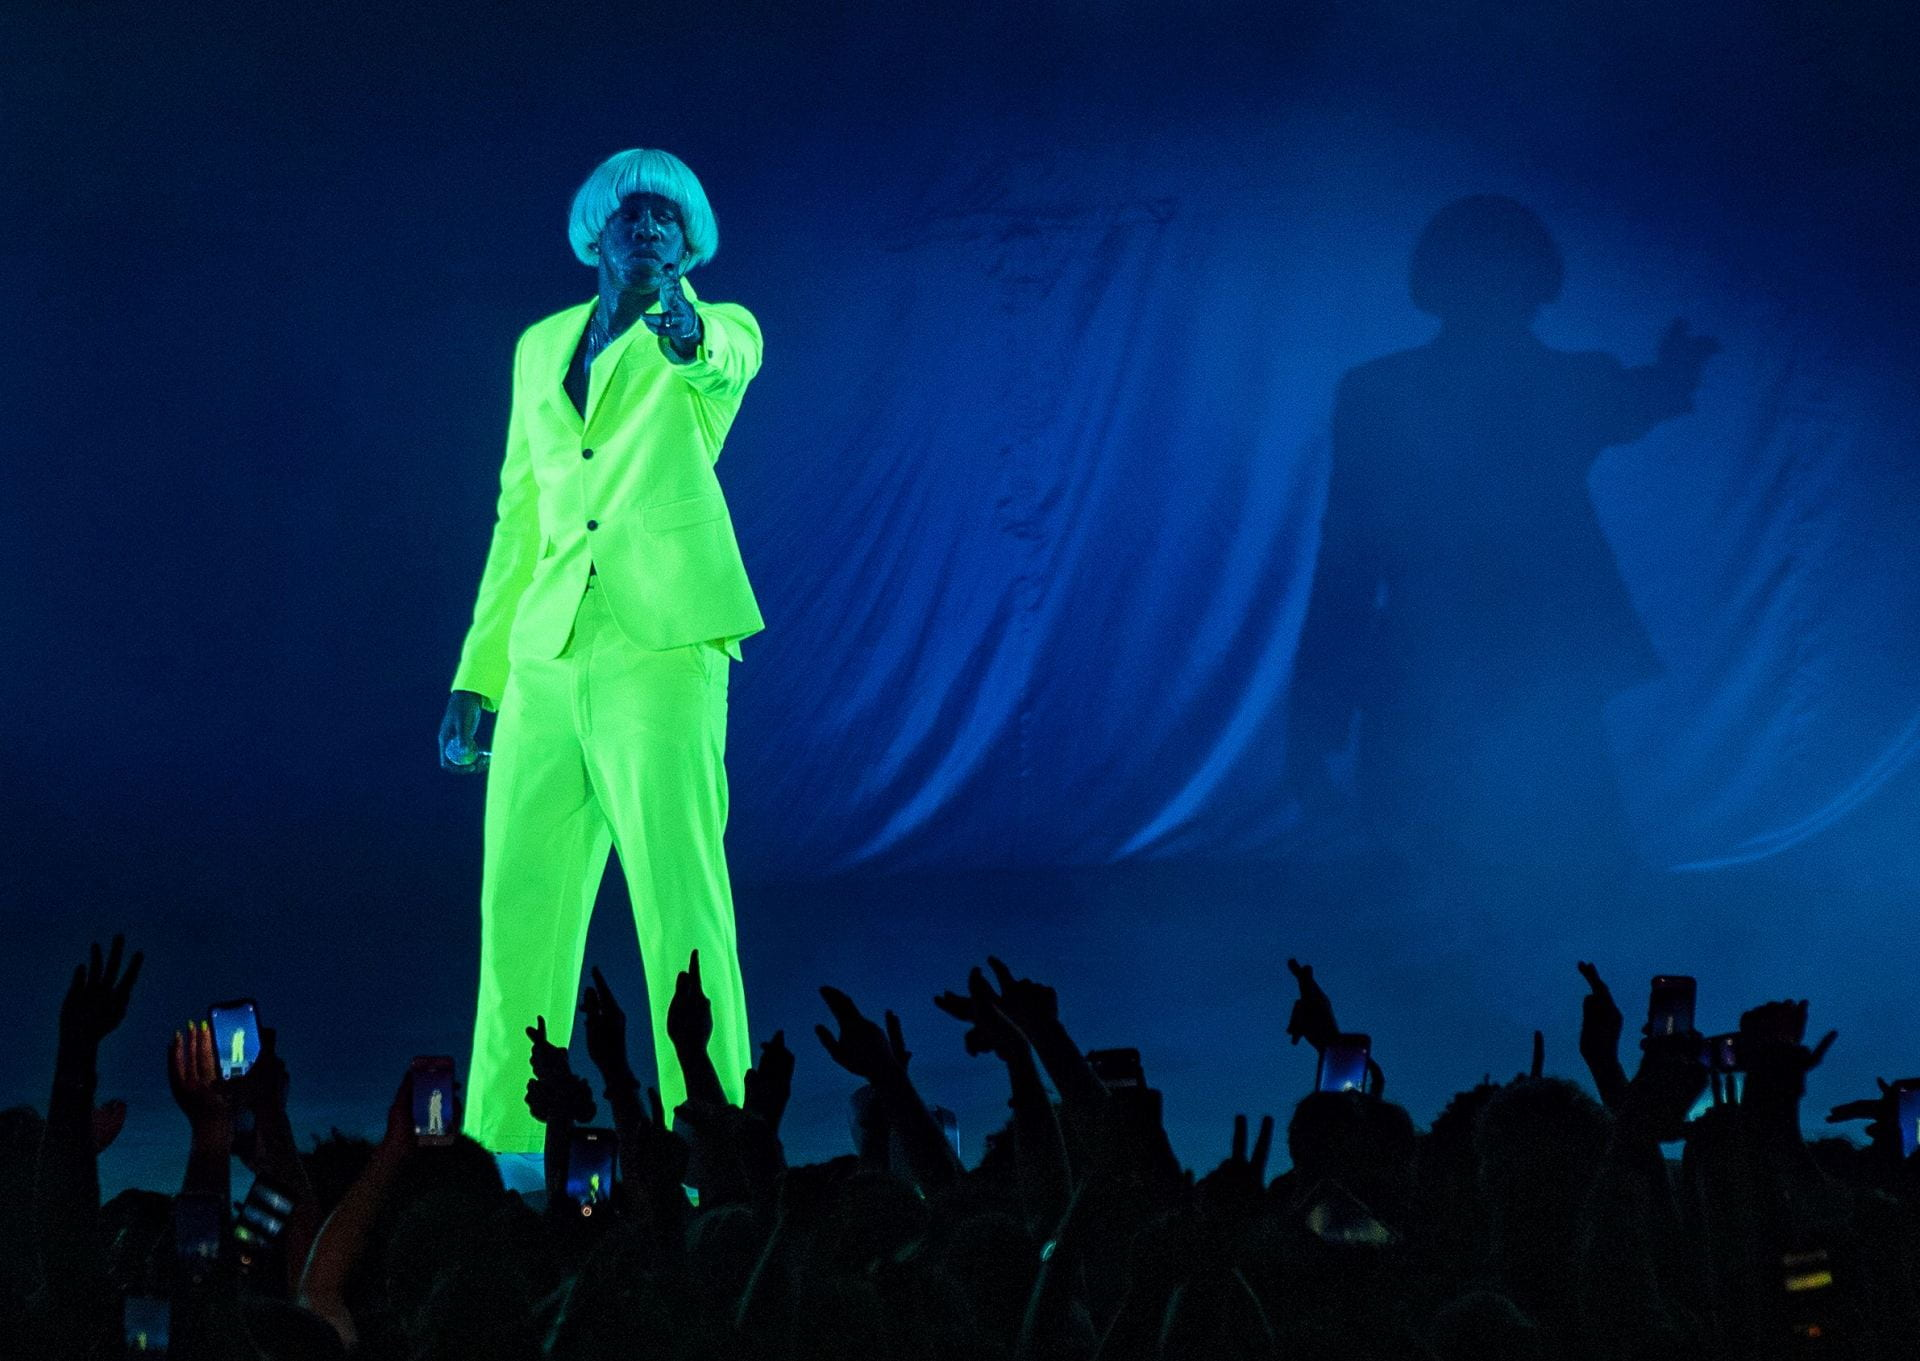 Concert Review Tyler The Creator Goes Wild At Express Live To An Unsavory Crowd